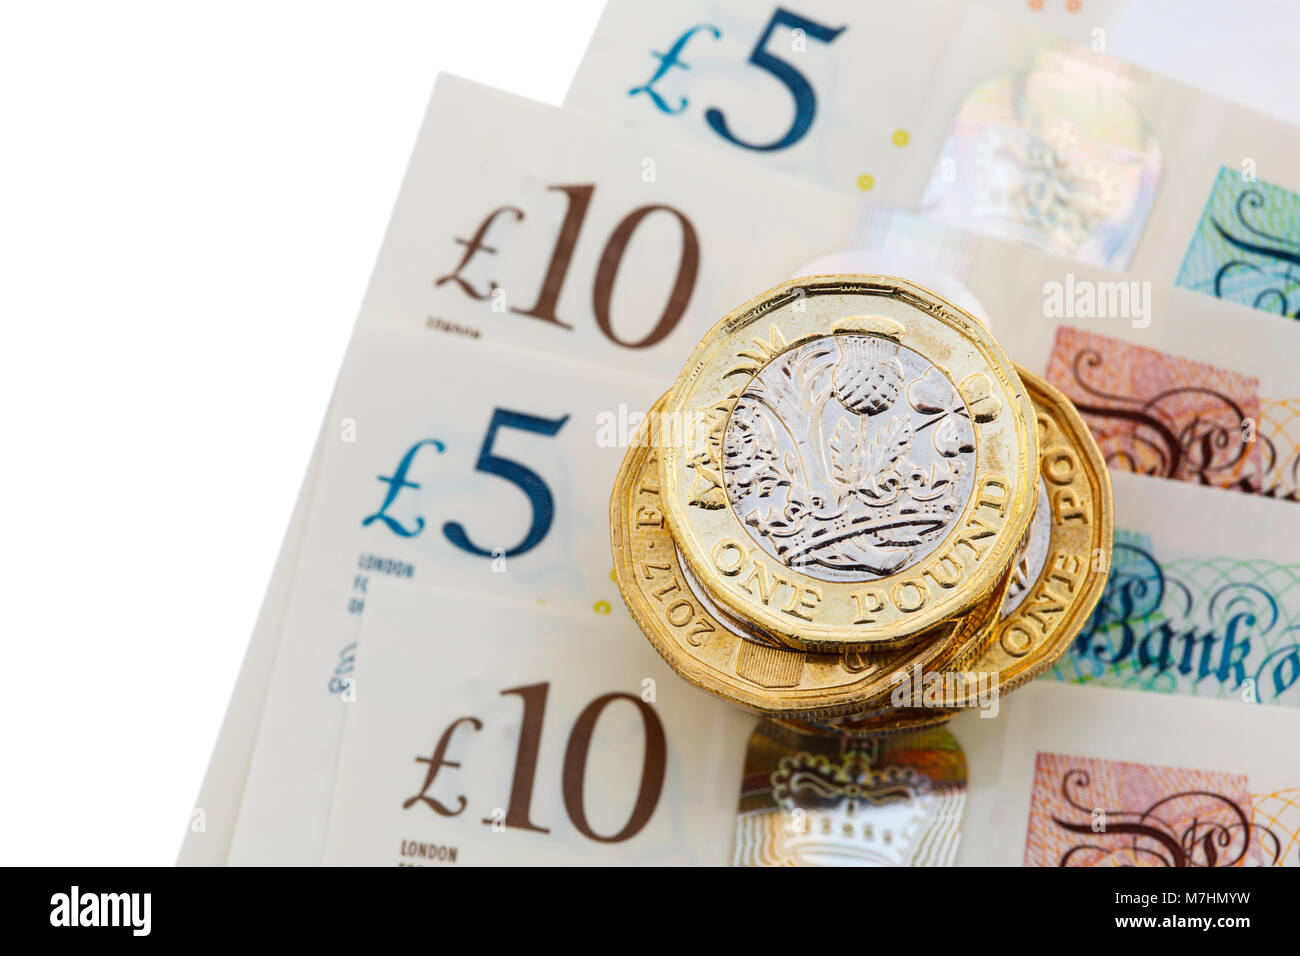 Pile of new 12-sided English one pound coins £ pounds sterling money cash on new polymer plastic £10 and £5 notes Stock Photo